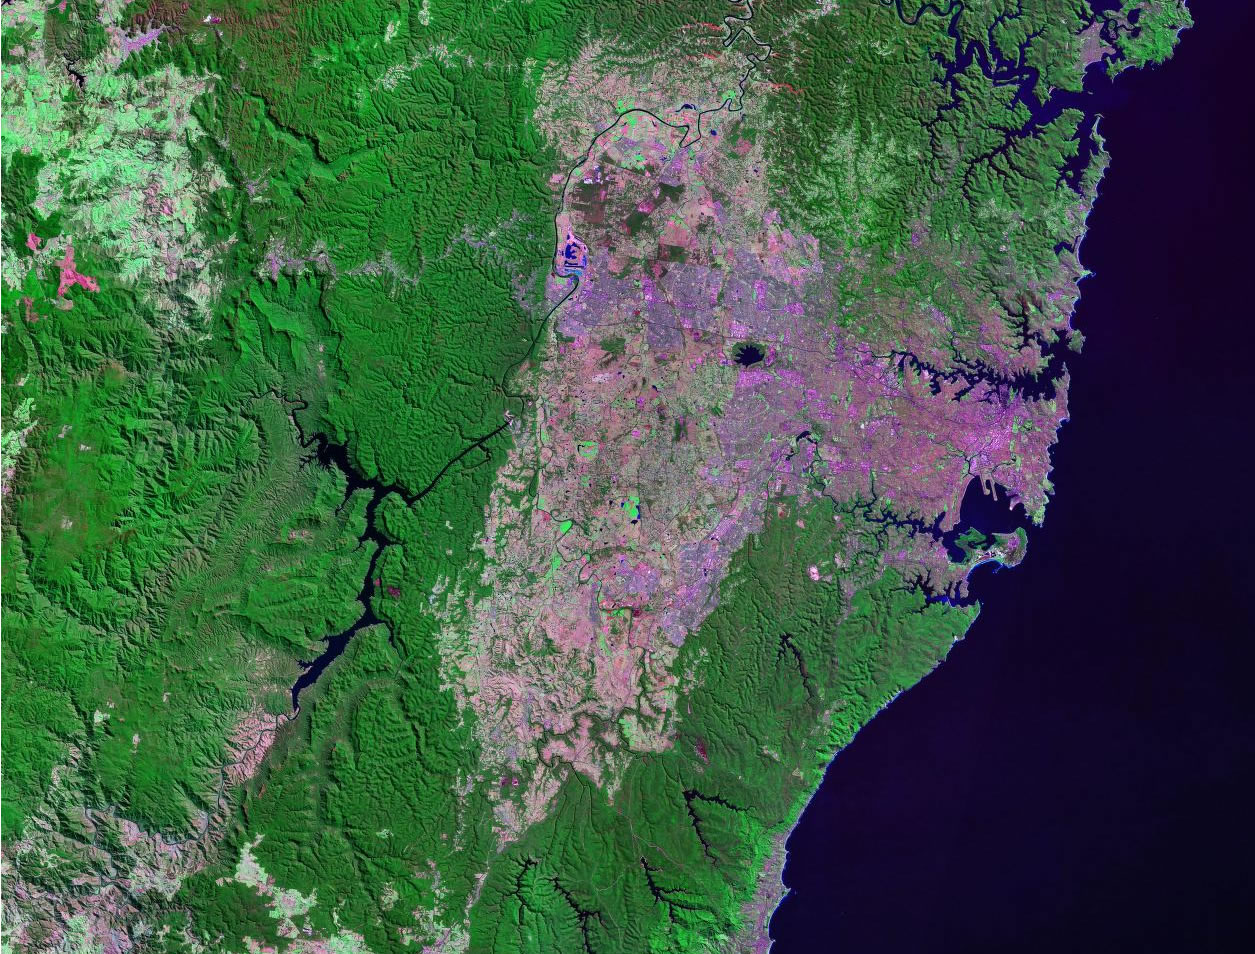 Sydney Australia satellite image map